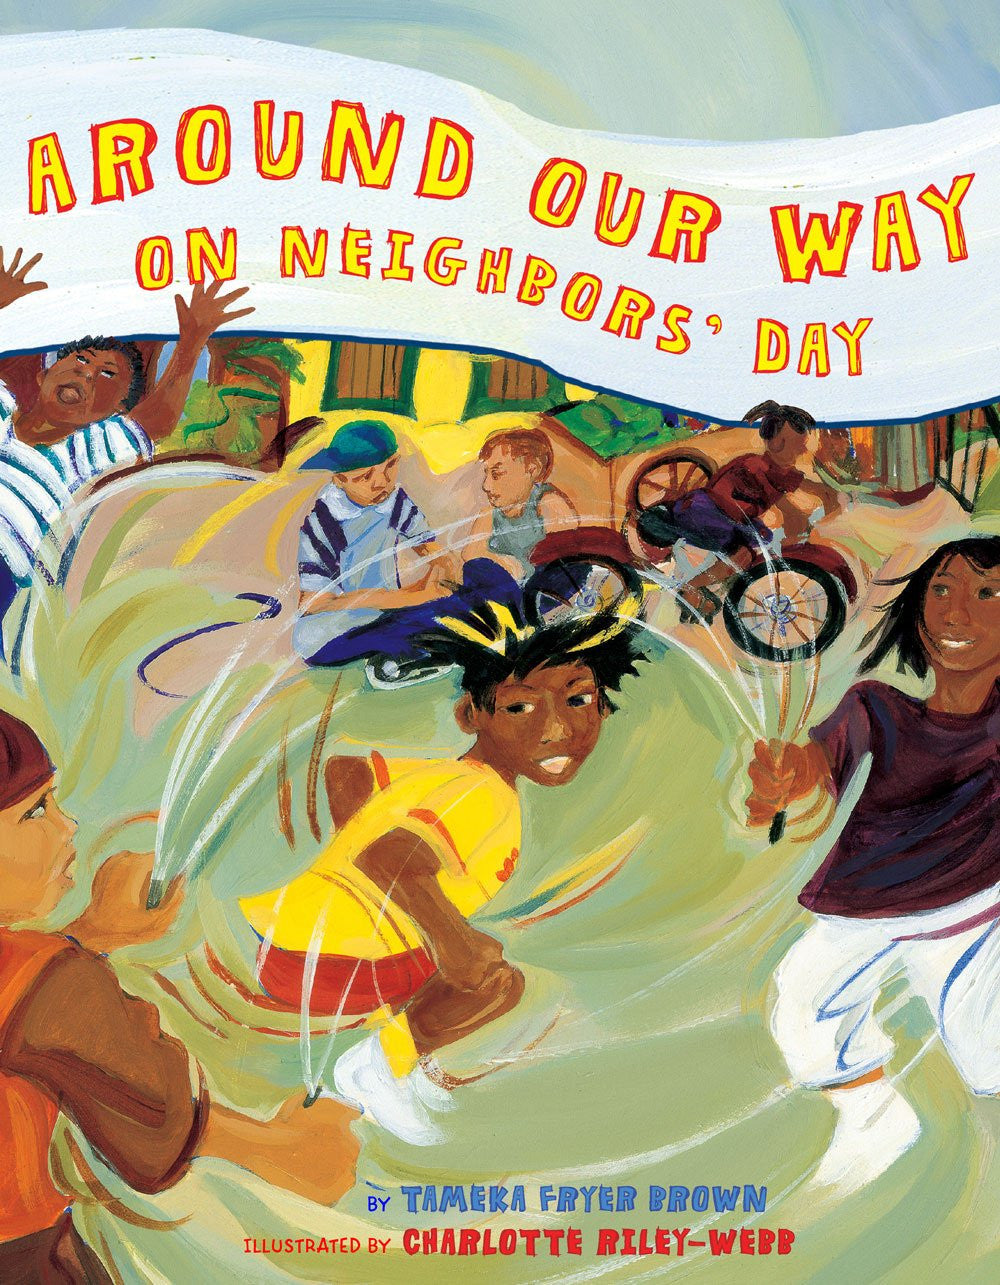 Around Our Way On Neighbors' Day by Tameka Fryer Brown and Charlotte Riley-Webb